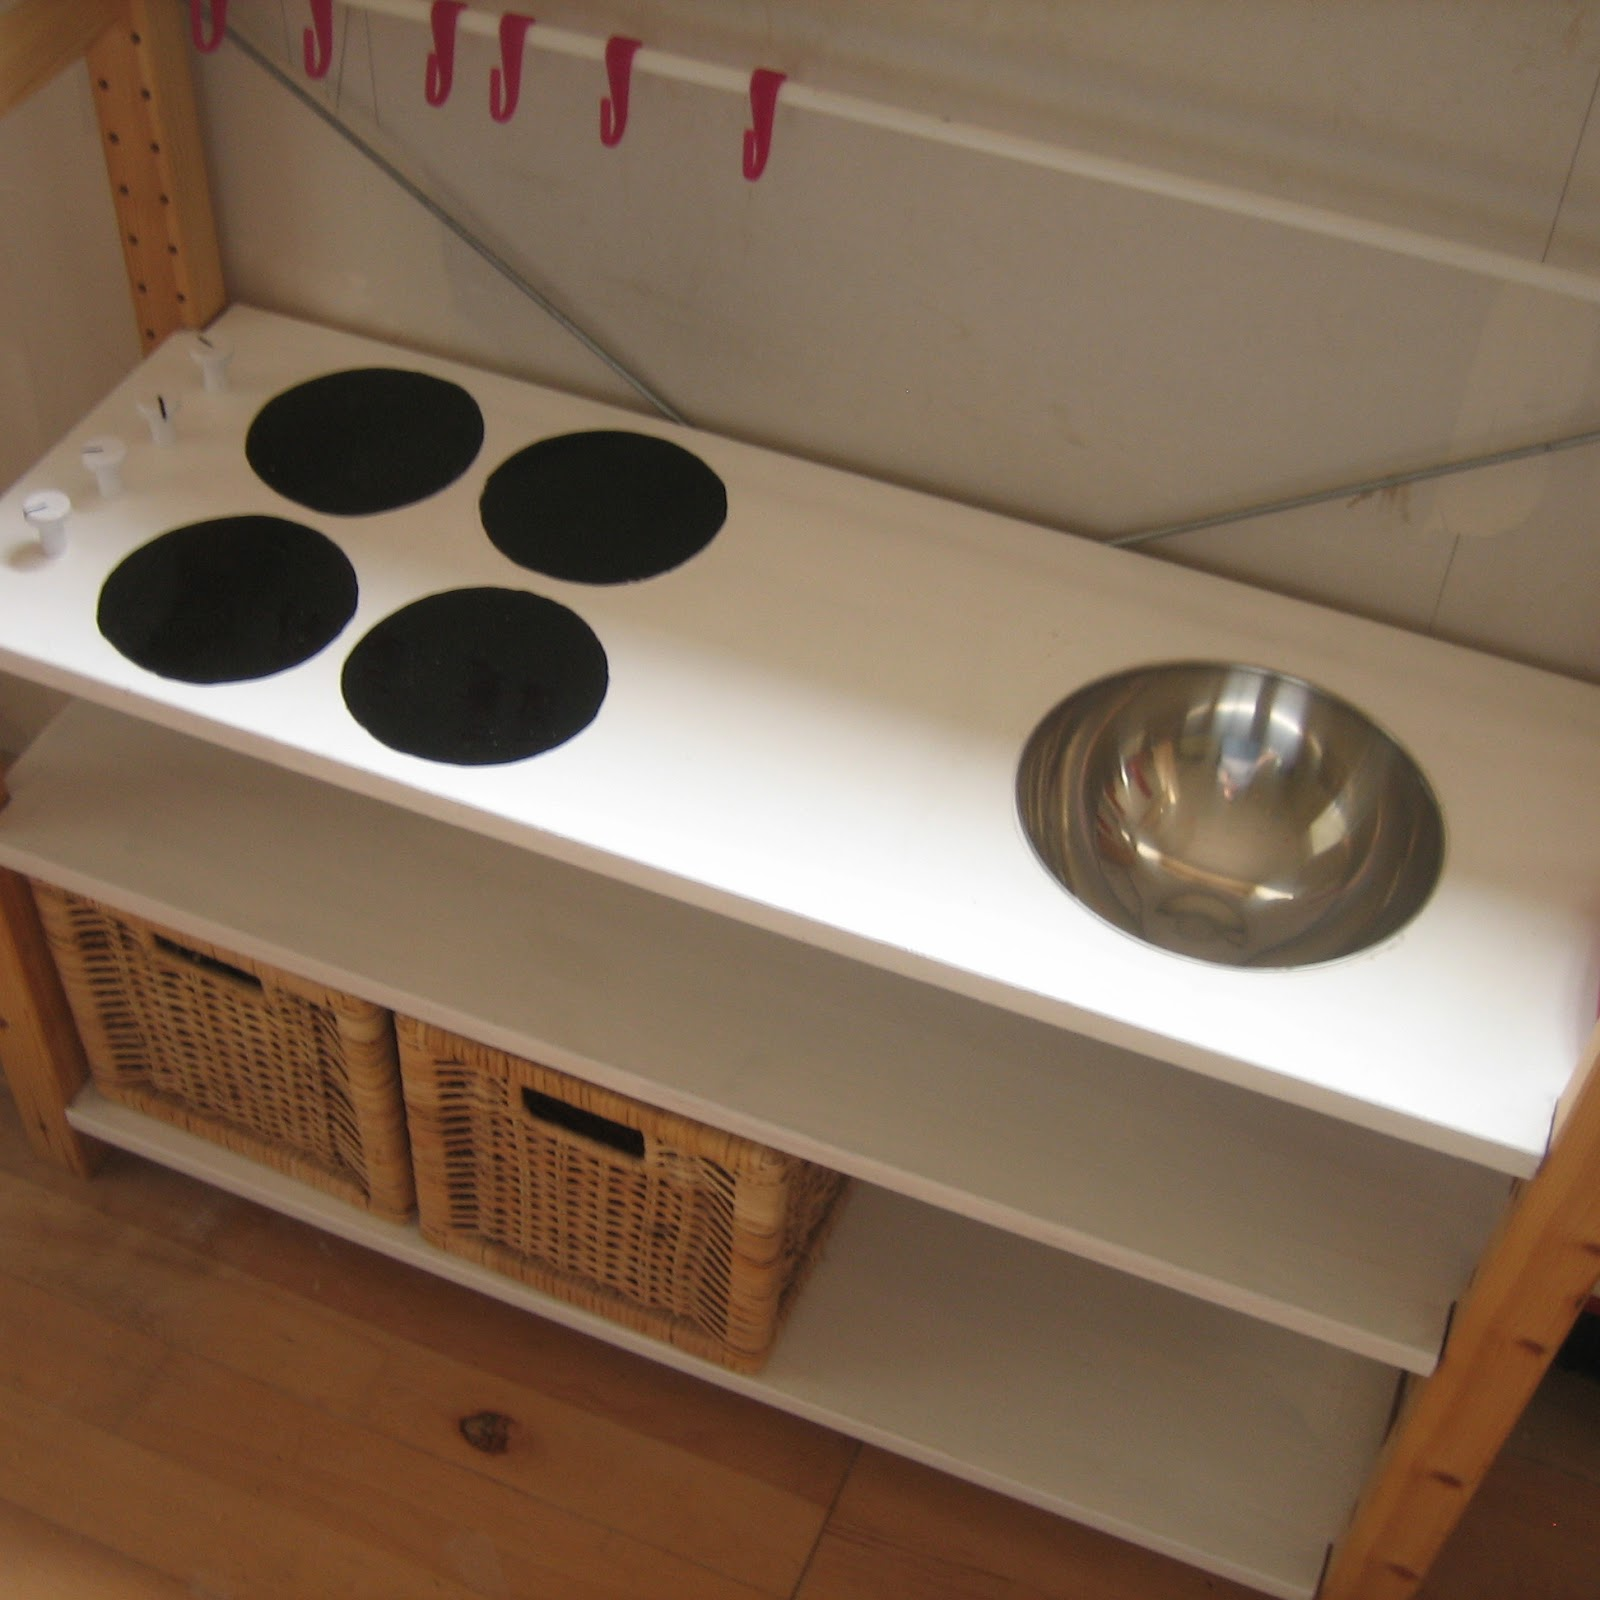 Our Handmade Home: How to make a Play Kitchen